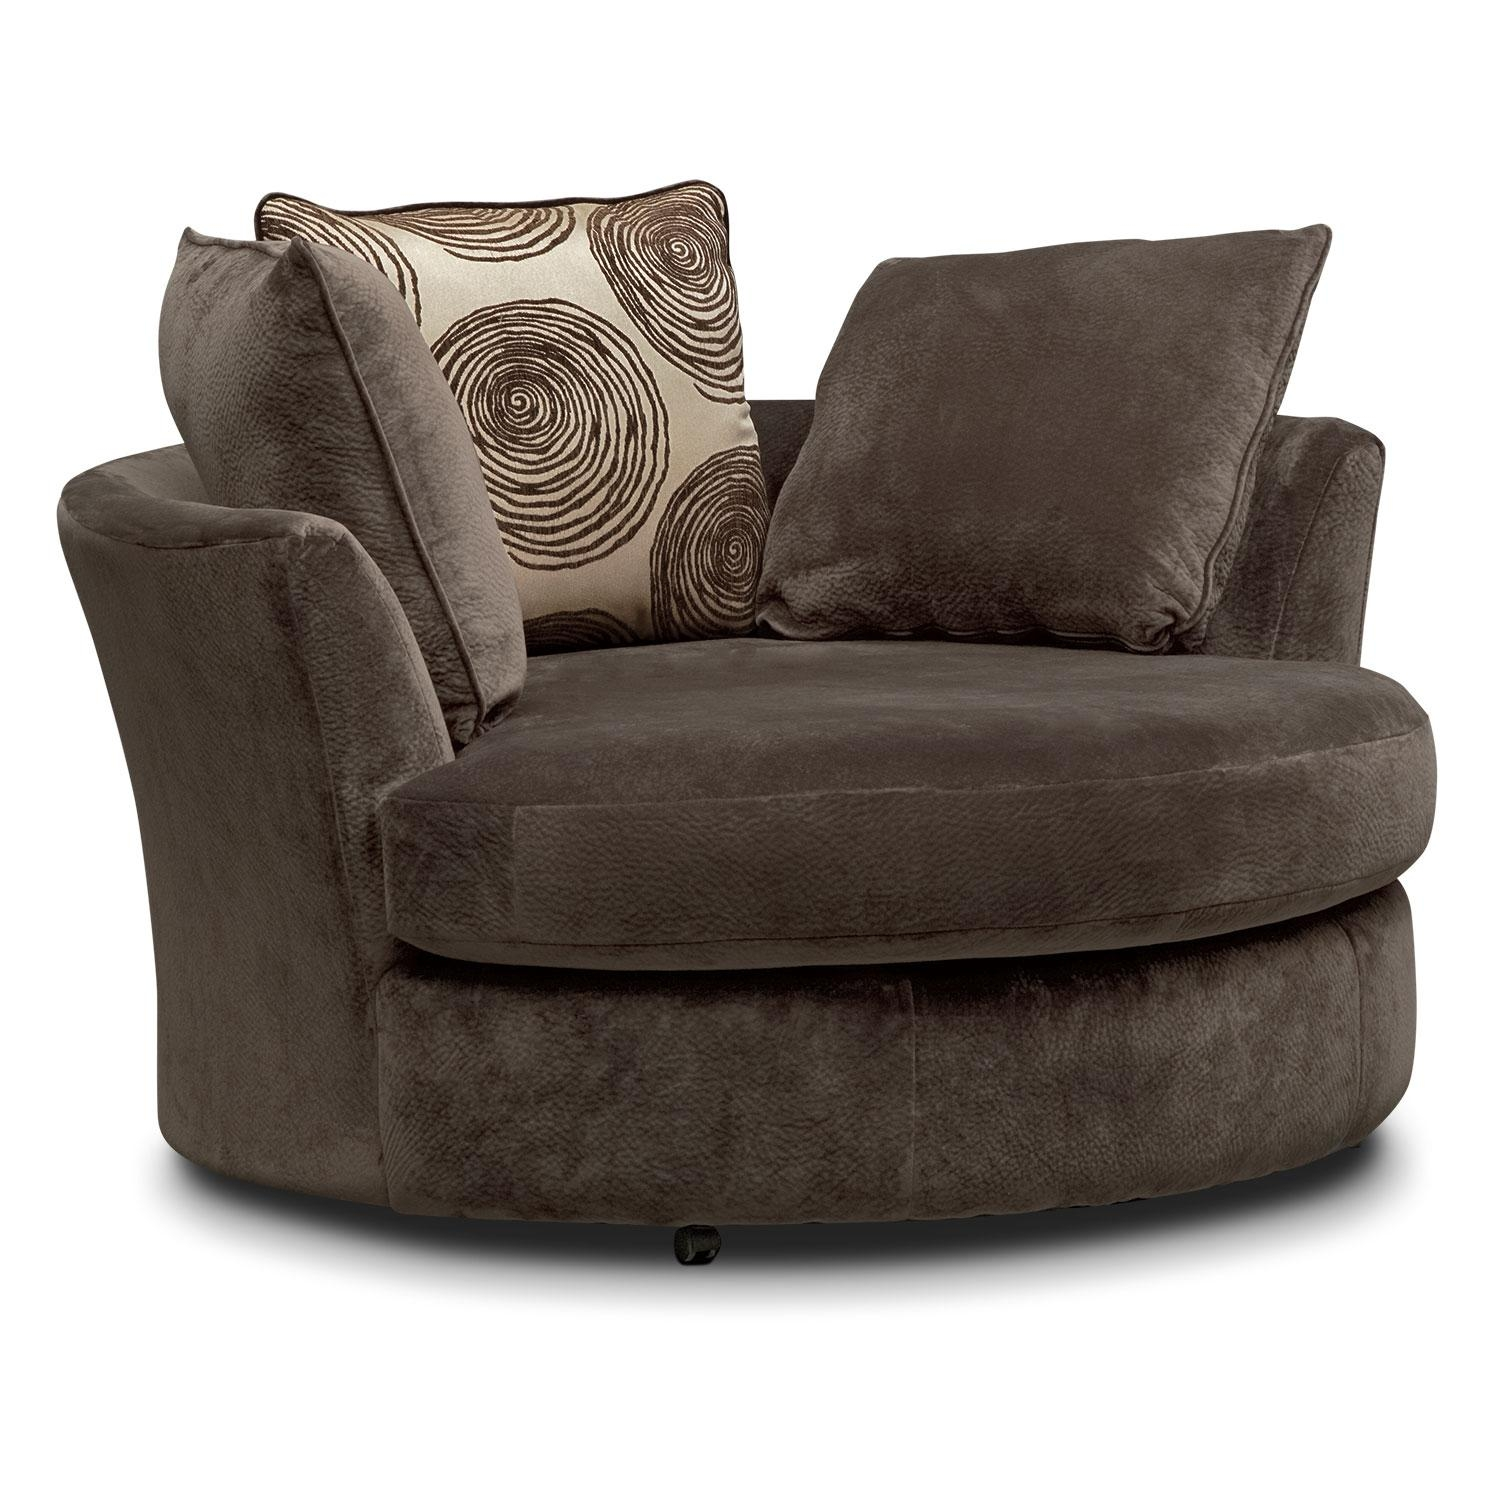 Cordelle Sofa And Swivel Chair Set – Chocolate | Value City Furniture Within Sofa With Swivel Chair (View 2 of 20)